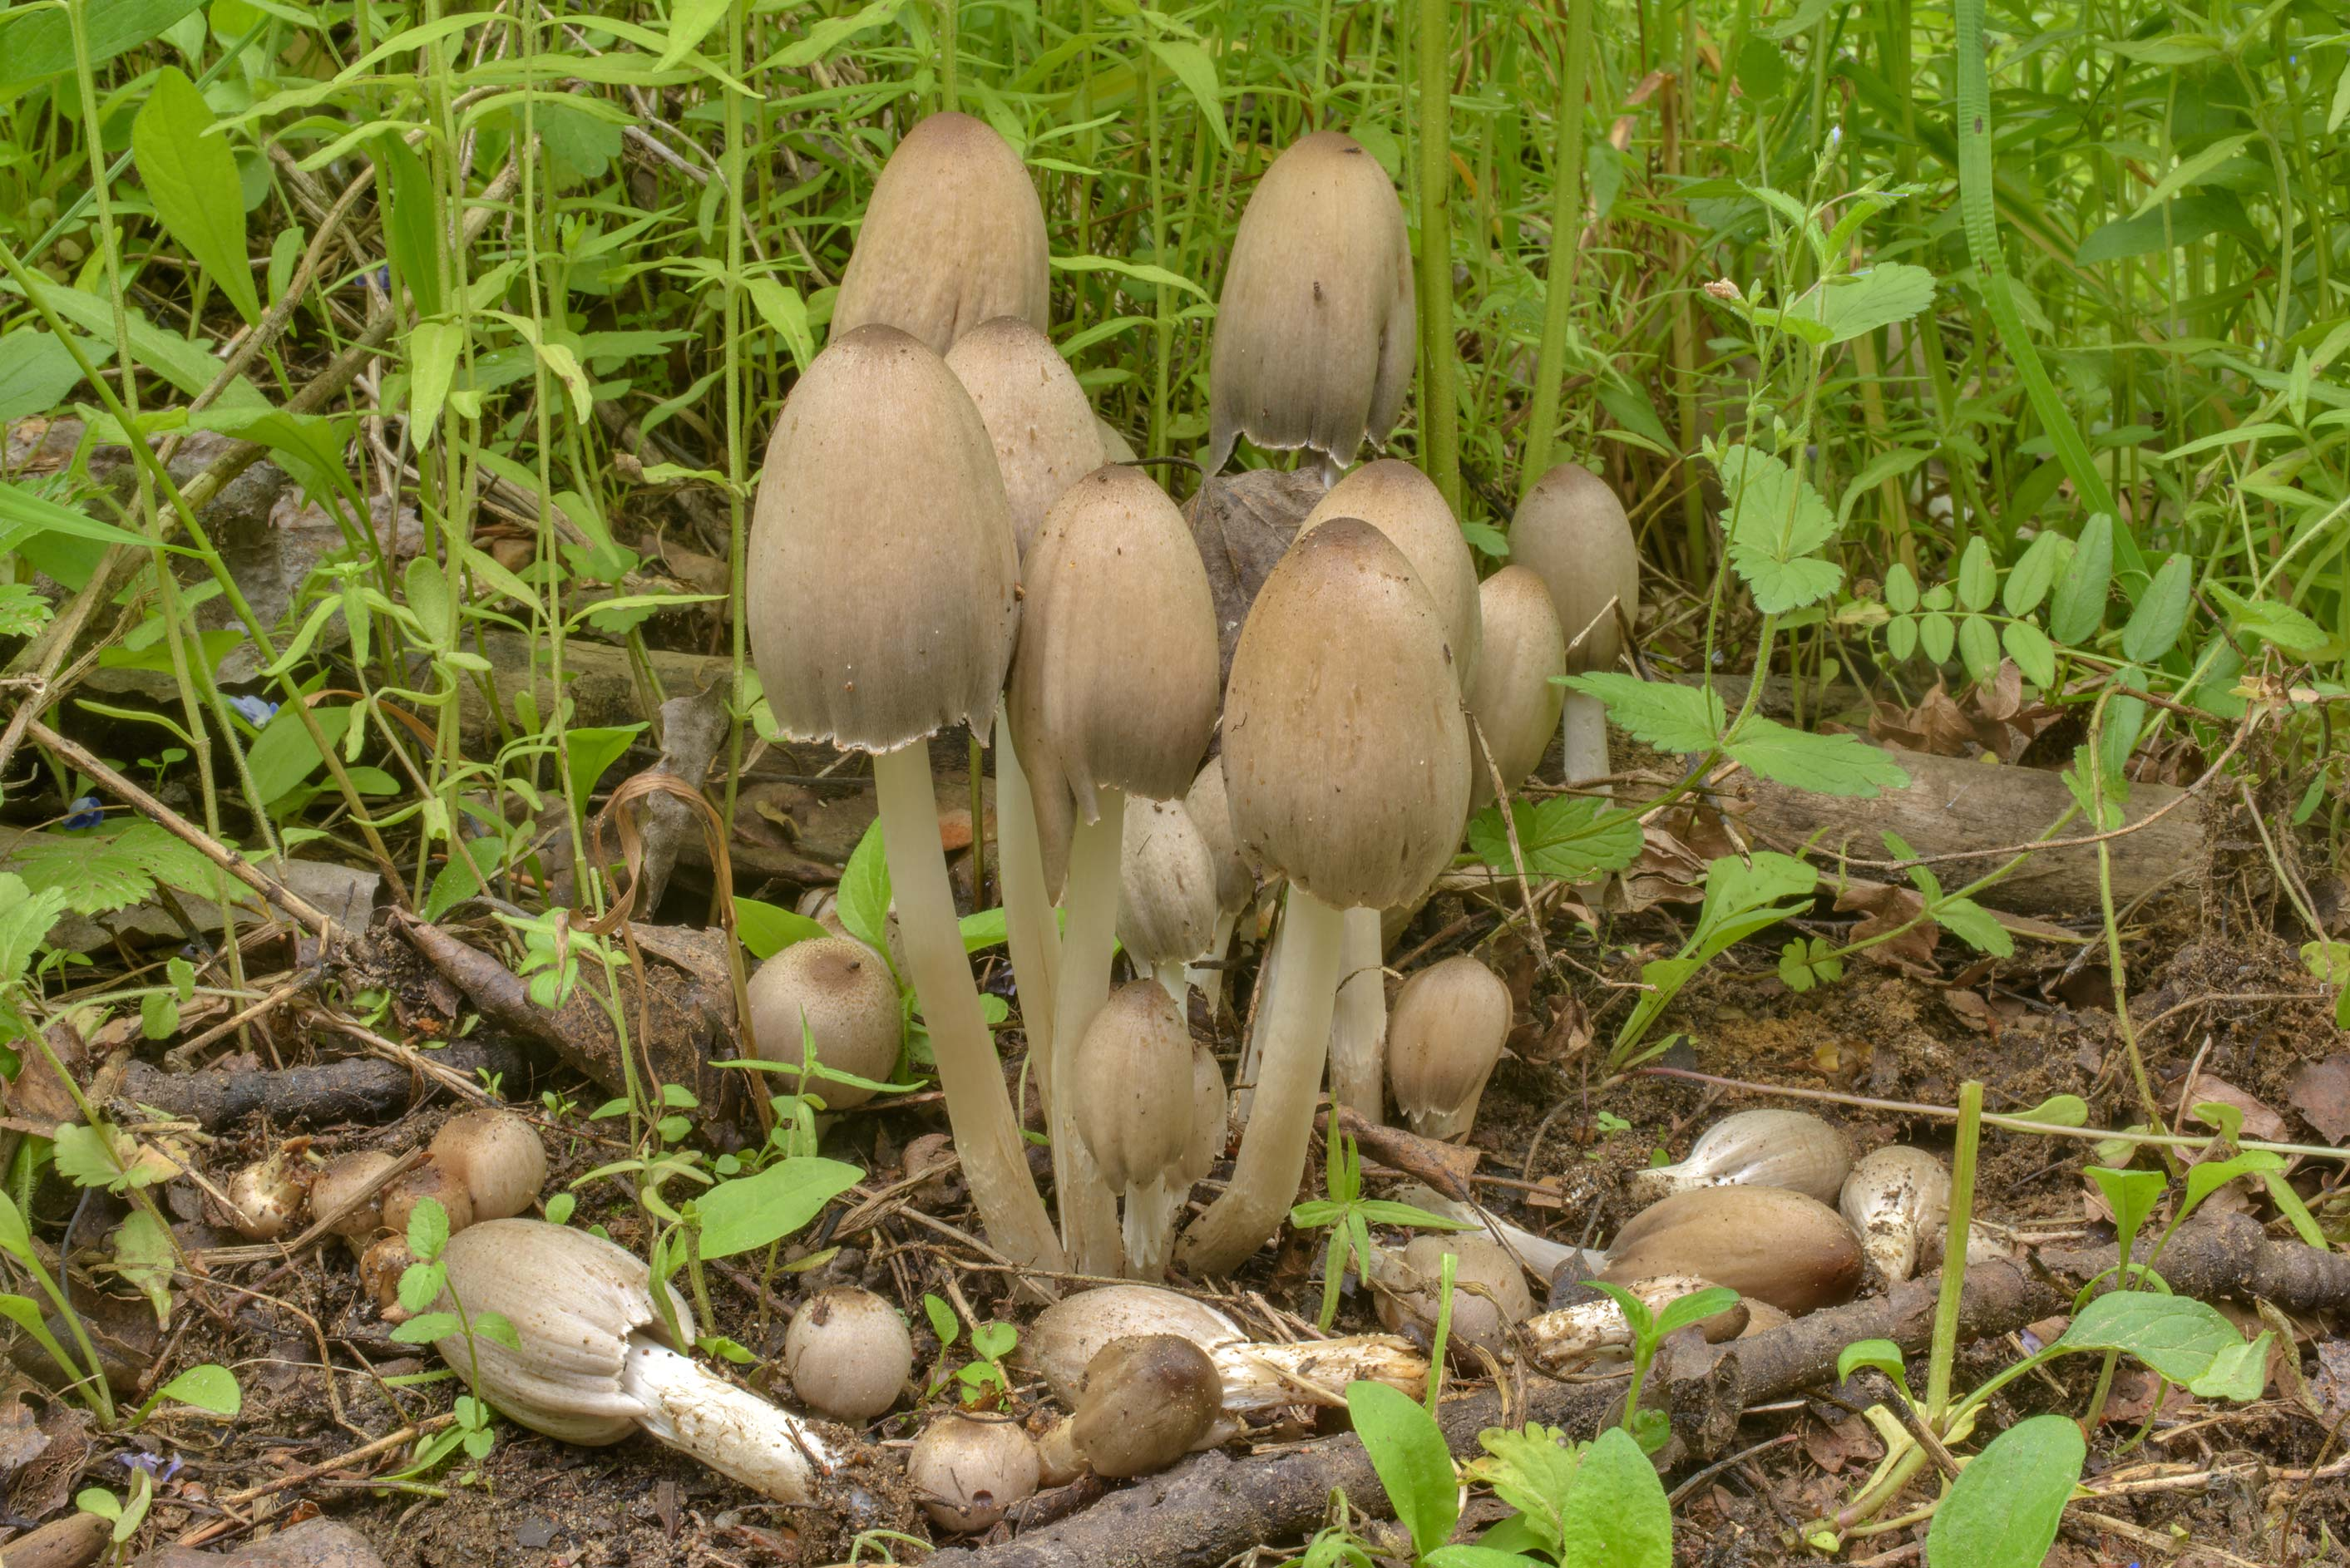 Humpback inkcap mushrooms (Coprinopsis acuminata...miles north from St.Petersburg. Russia